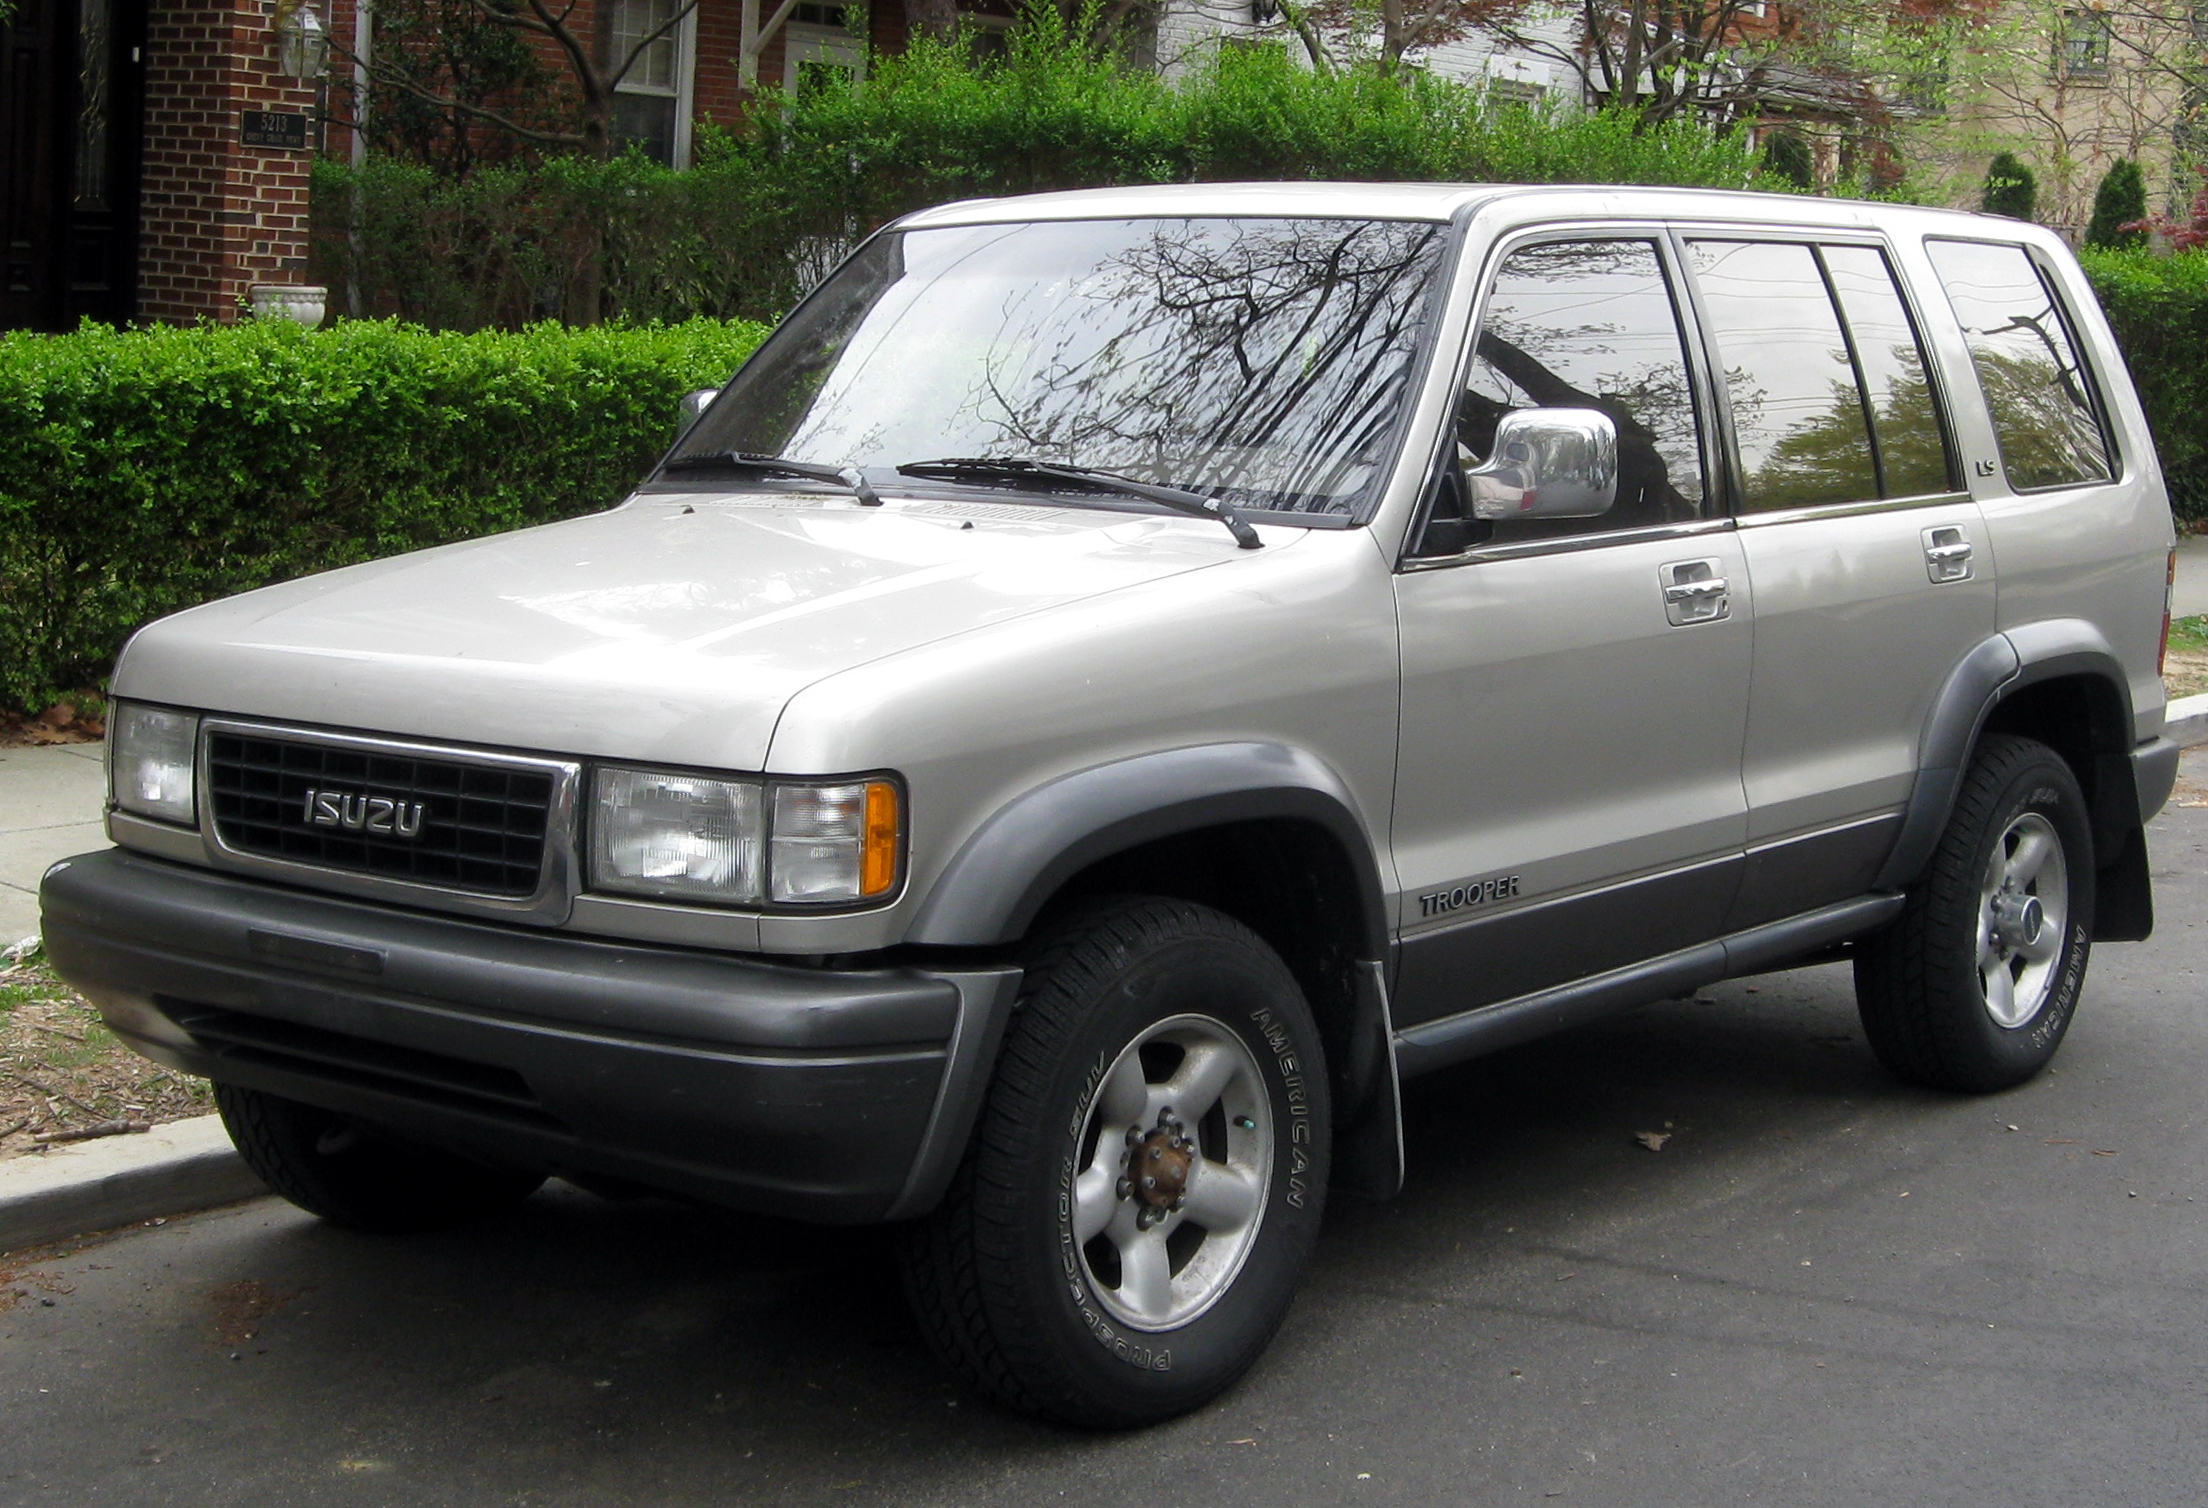 isuzu trooper Array - 73 1997 isuzu trooper repair ...